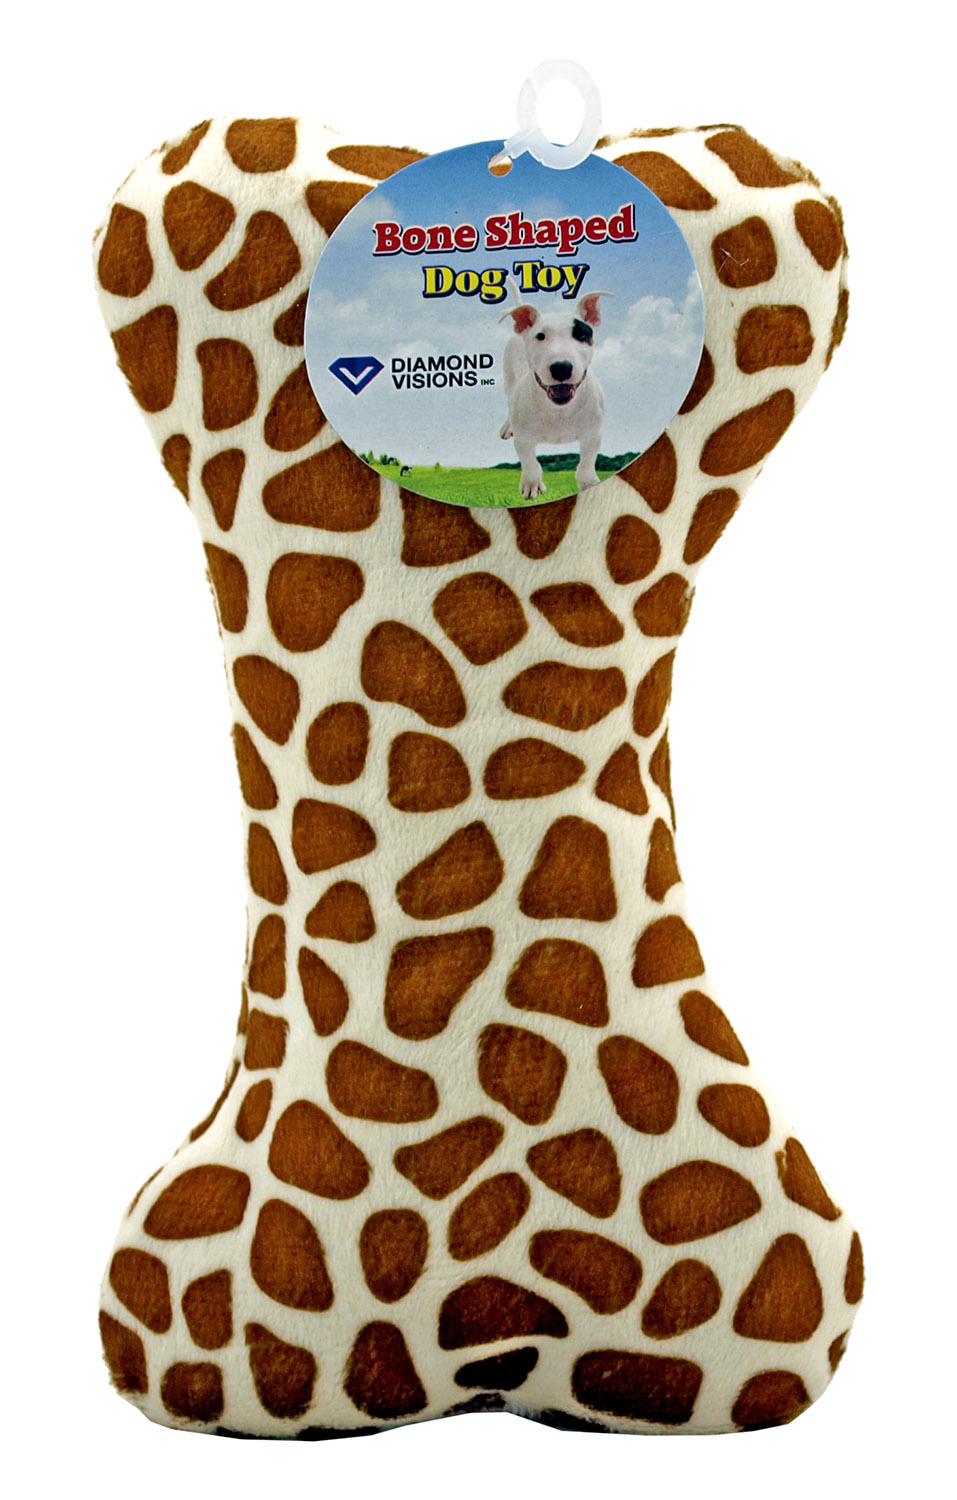 Bone Shaped Light Weight Plush Dog Toy with Squeeker for Large and Small Dogs - Diamond Visions